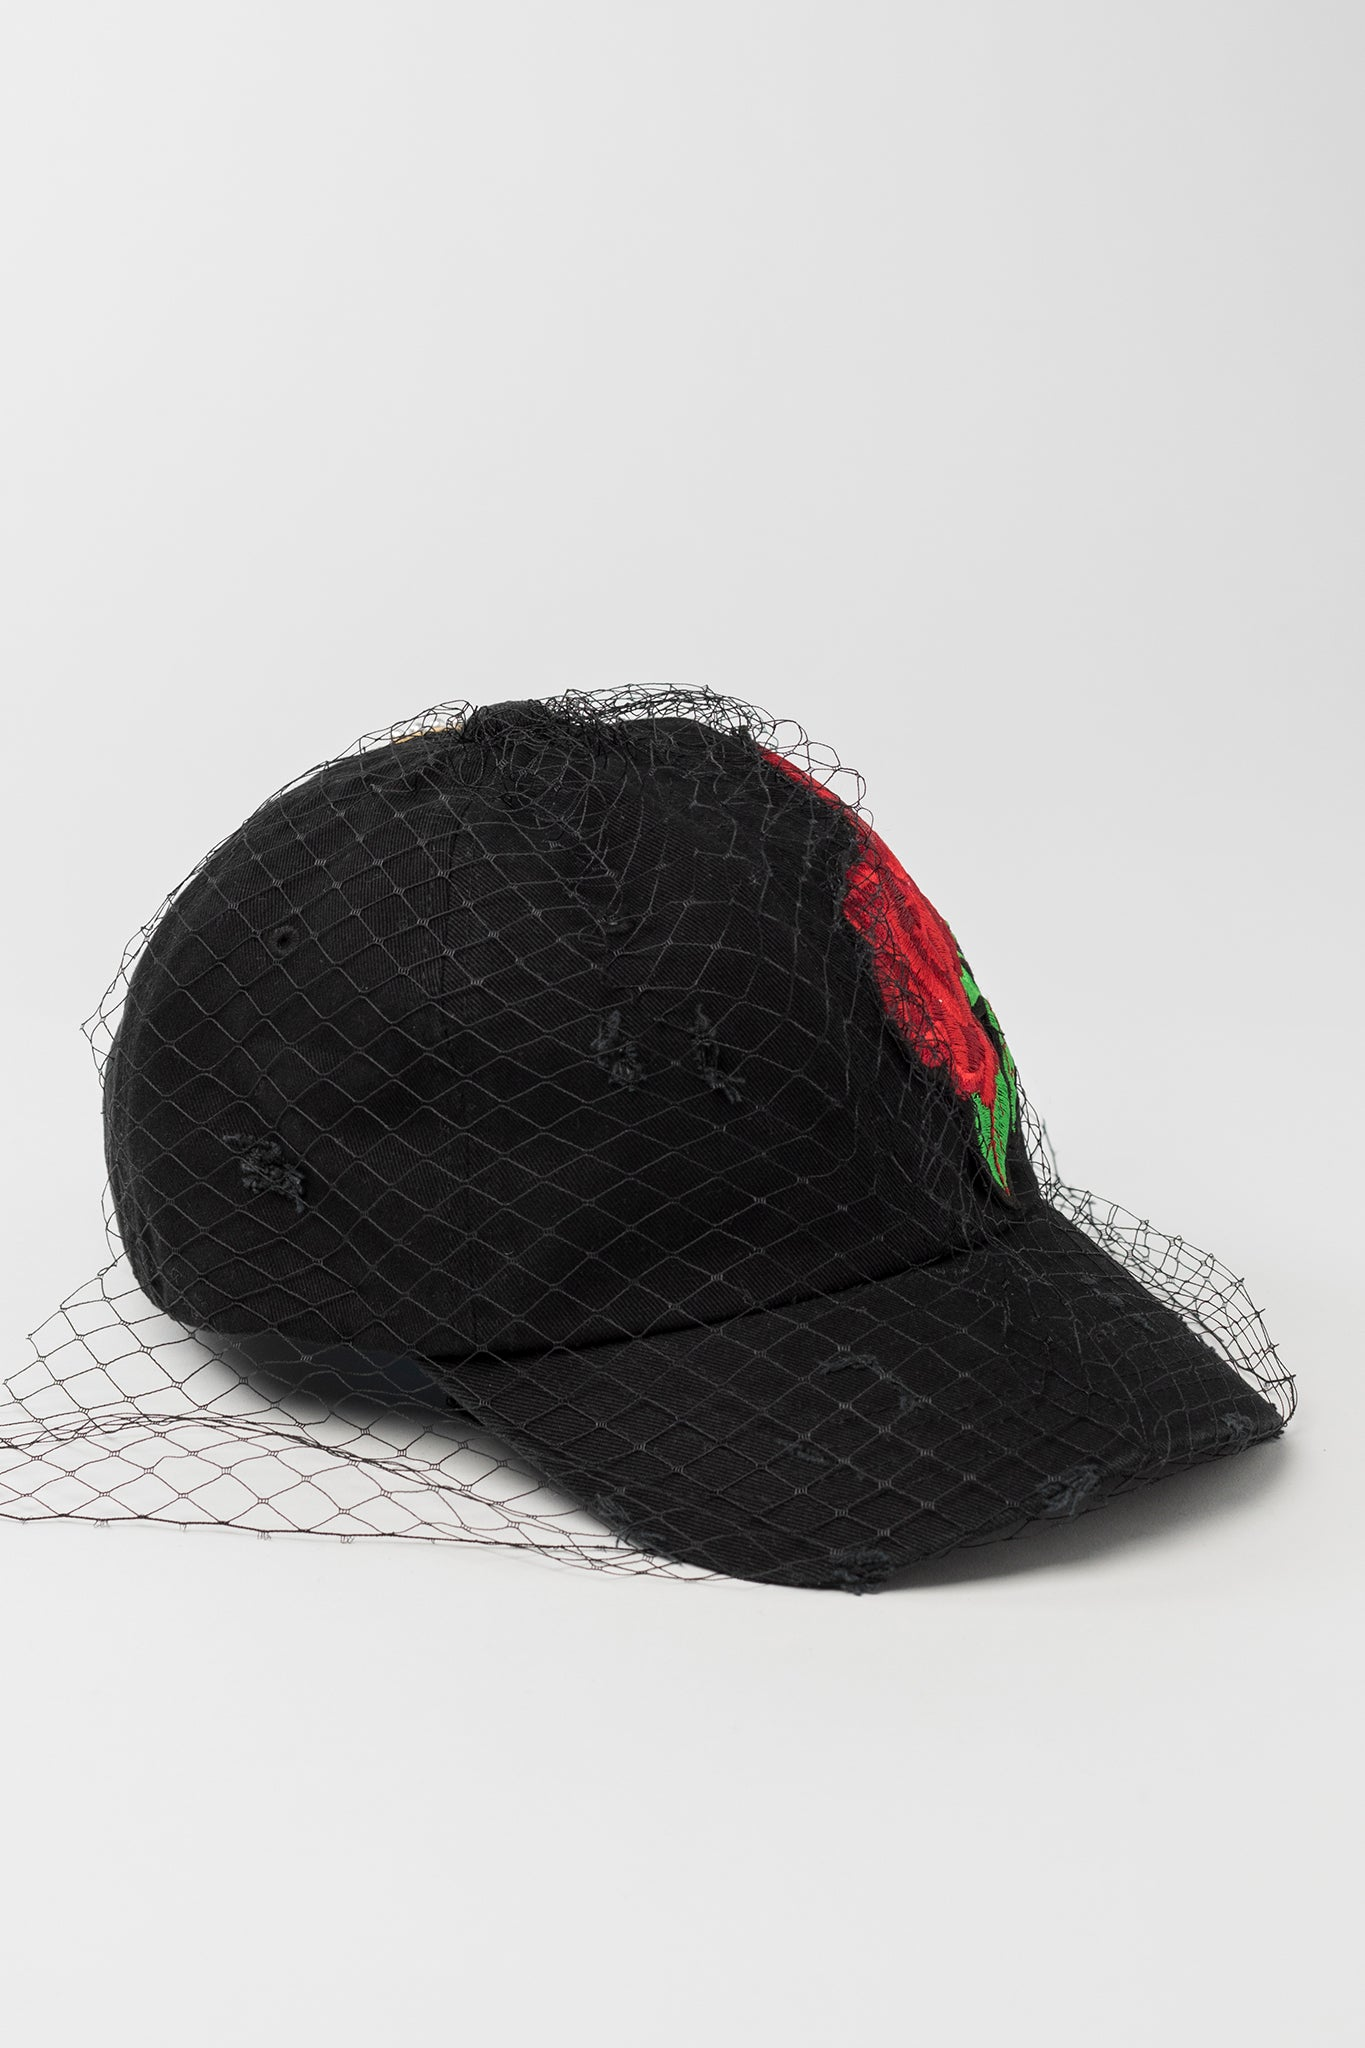 JUST LOVER BASEBALL CAP